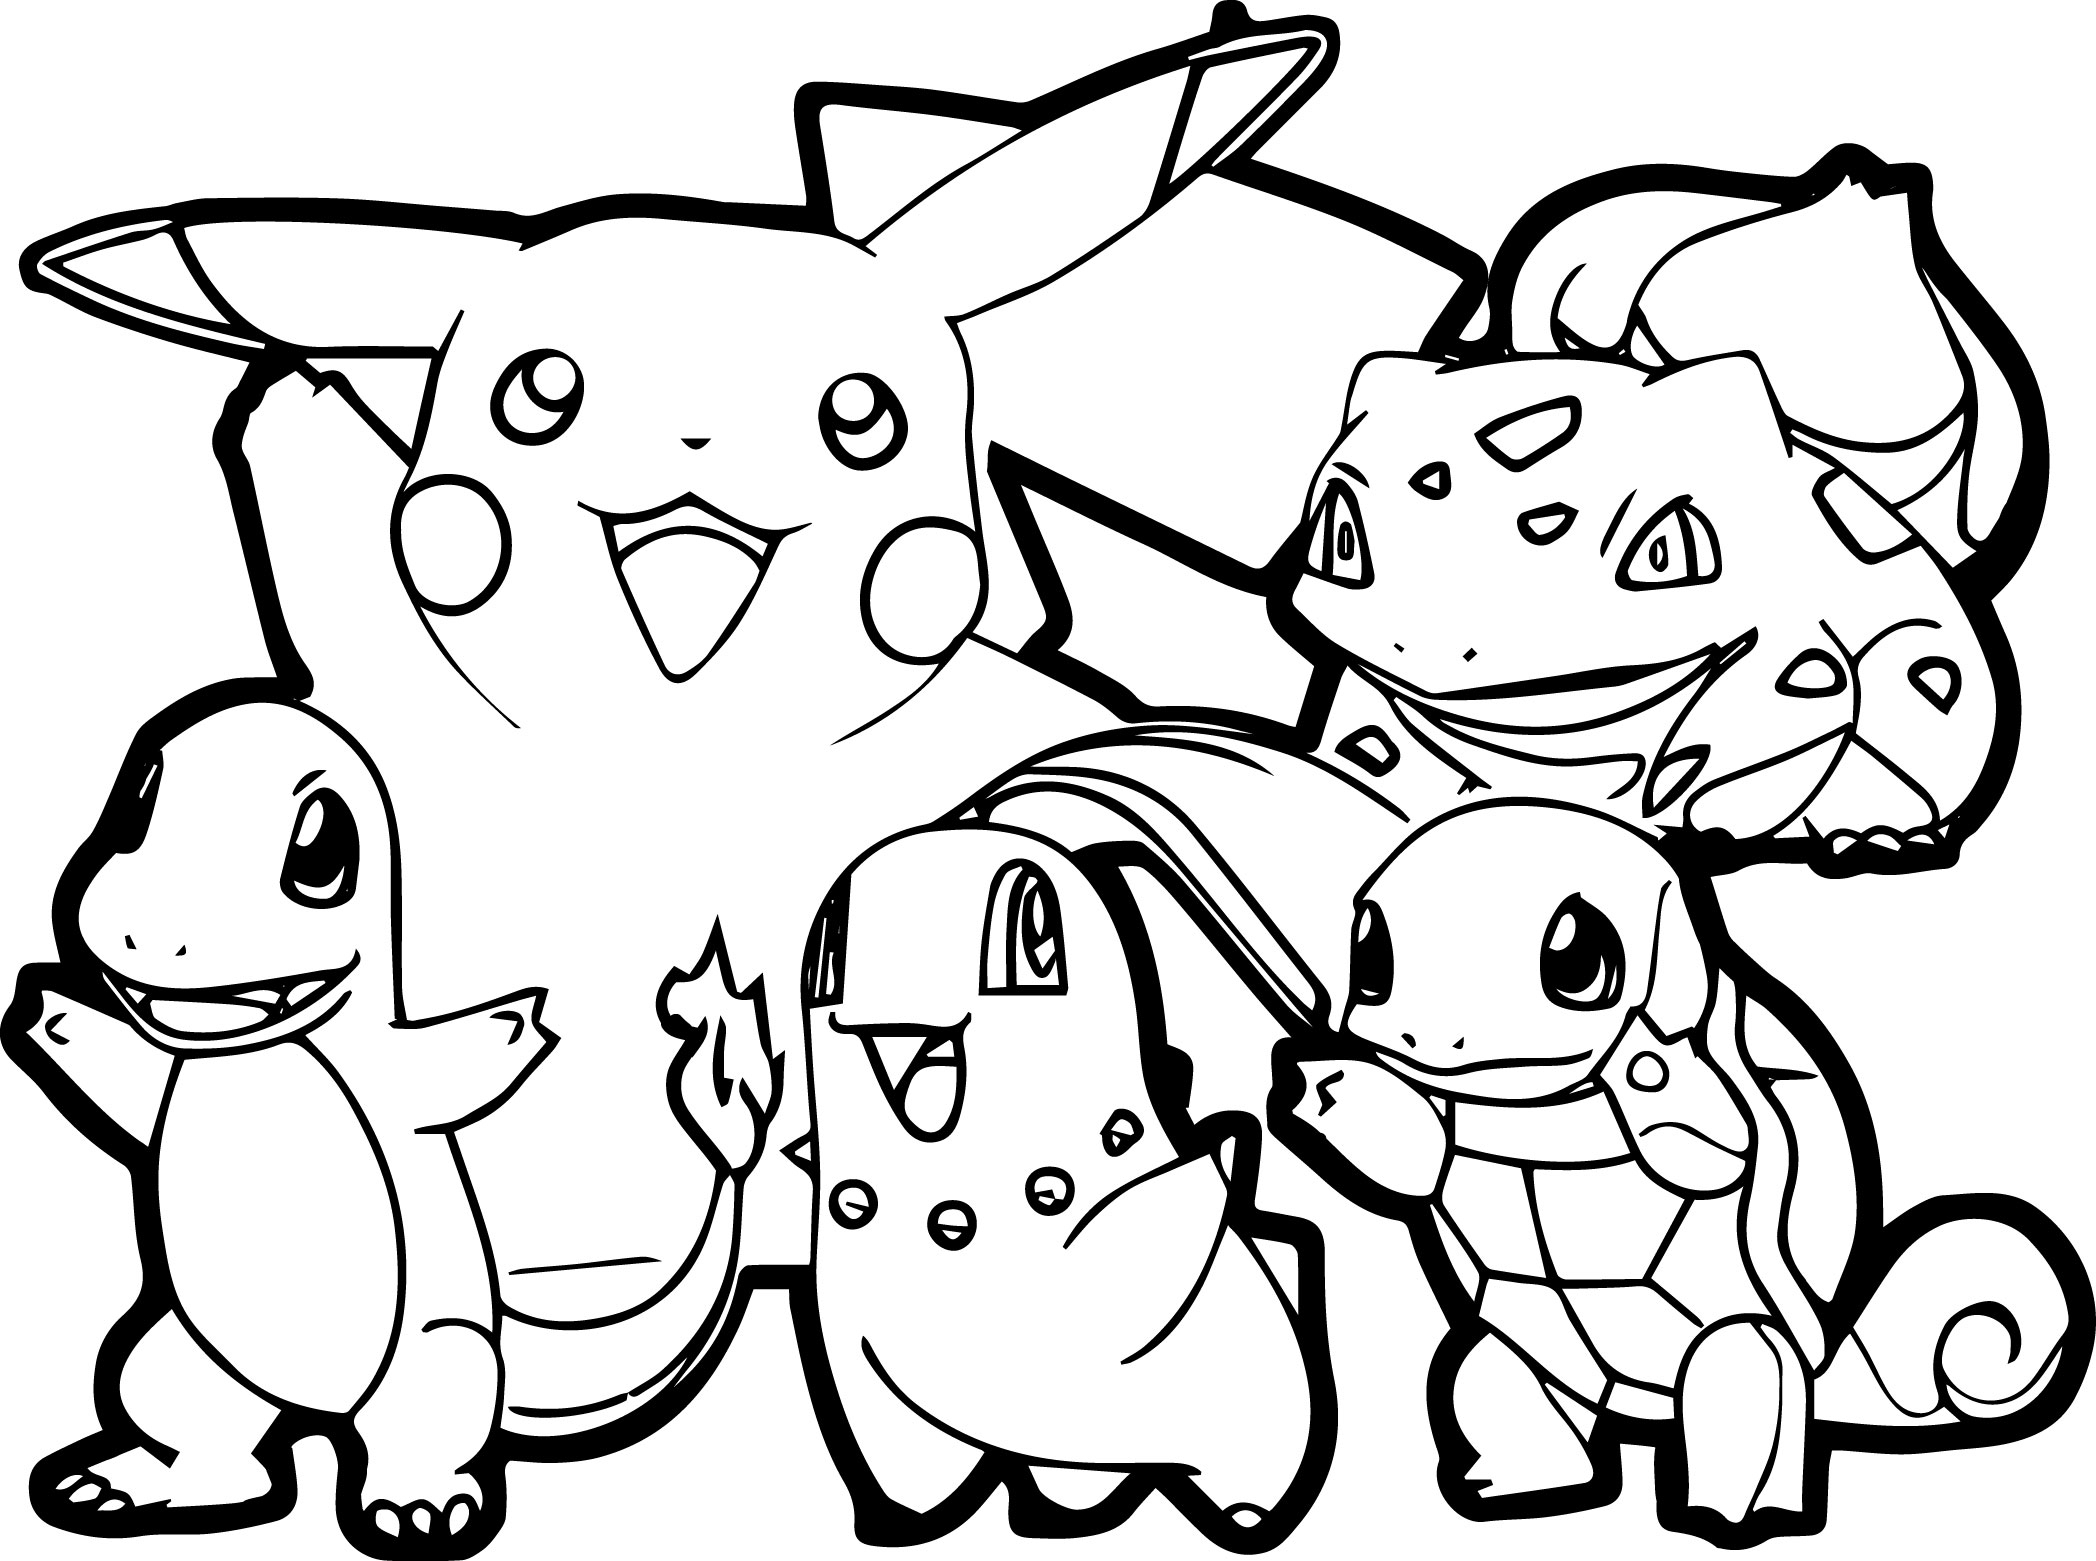 27+ Inspiration Image of Free Printable Pokemon Coloring Pages